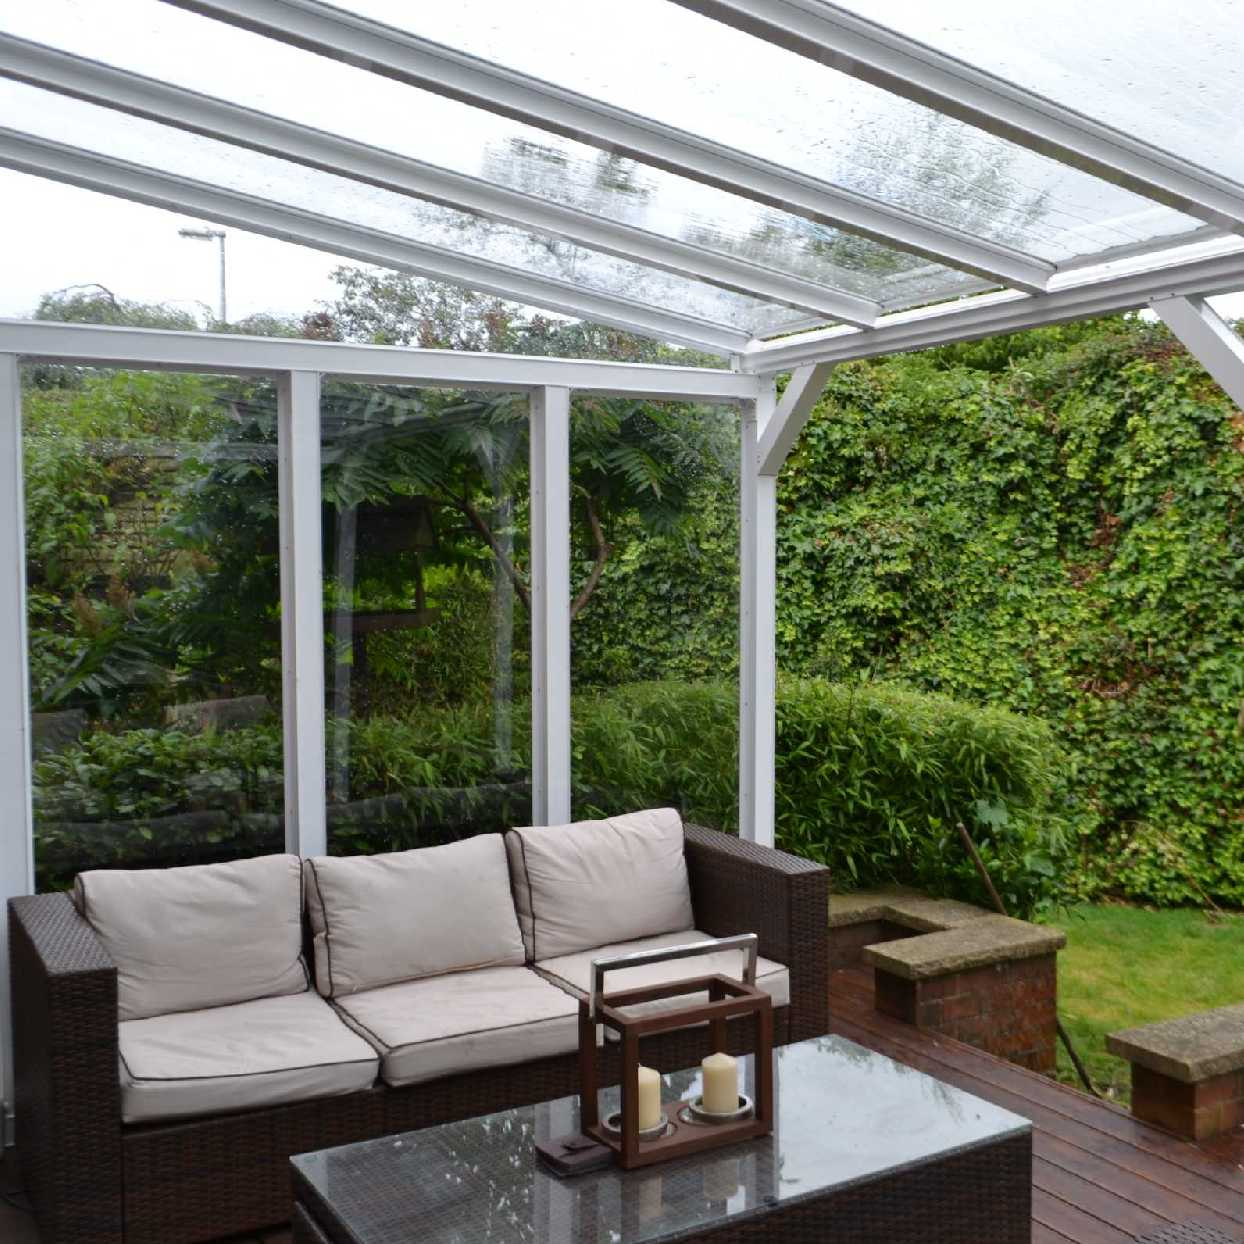 Great selection of Omega Smart Lean-To Canopy with 16mm Polycarbonate Glazing - 8.4m (W) x 2.5m (P), (4) Supporting Posts